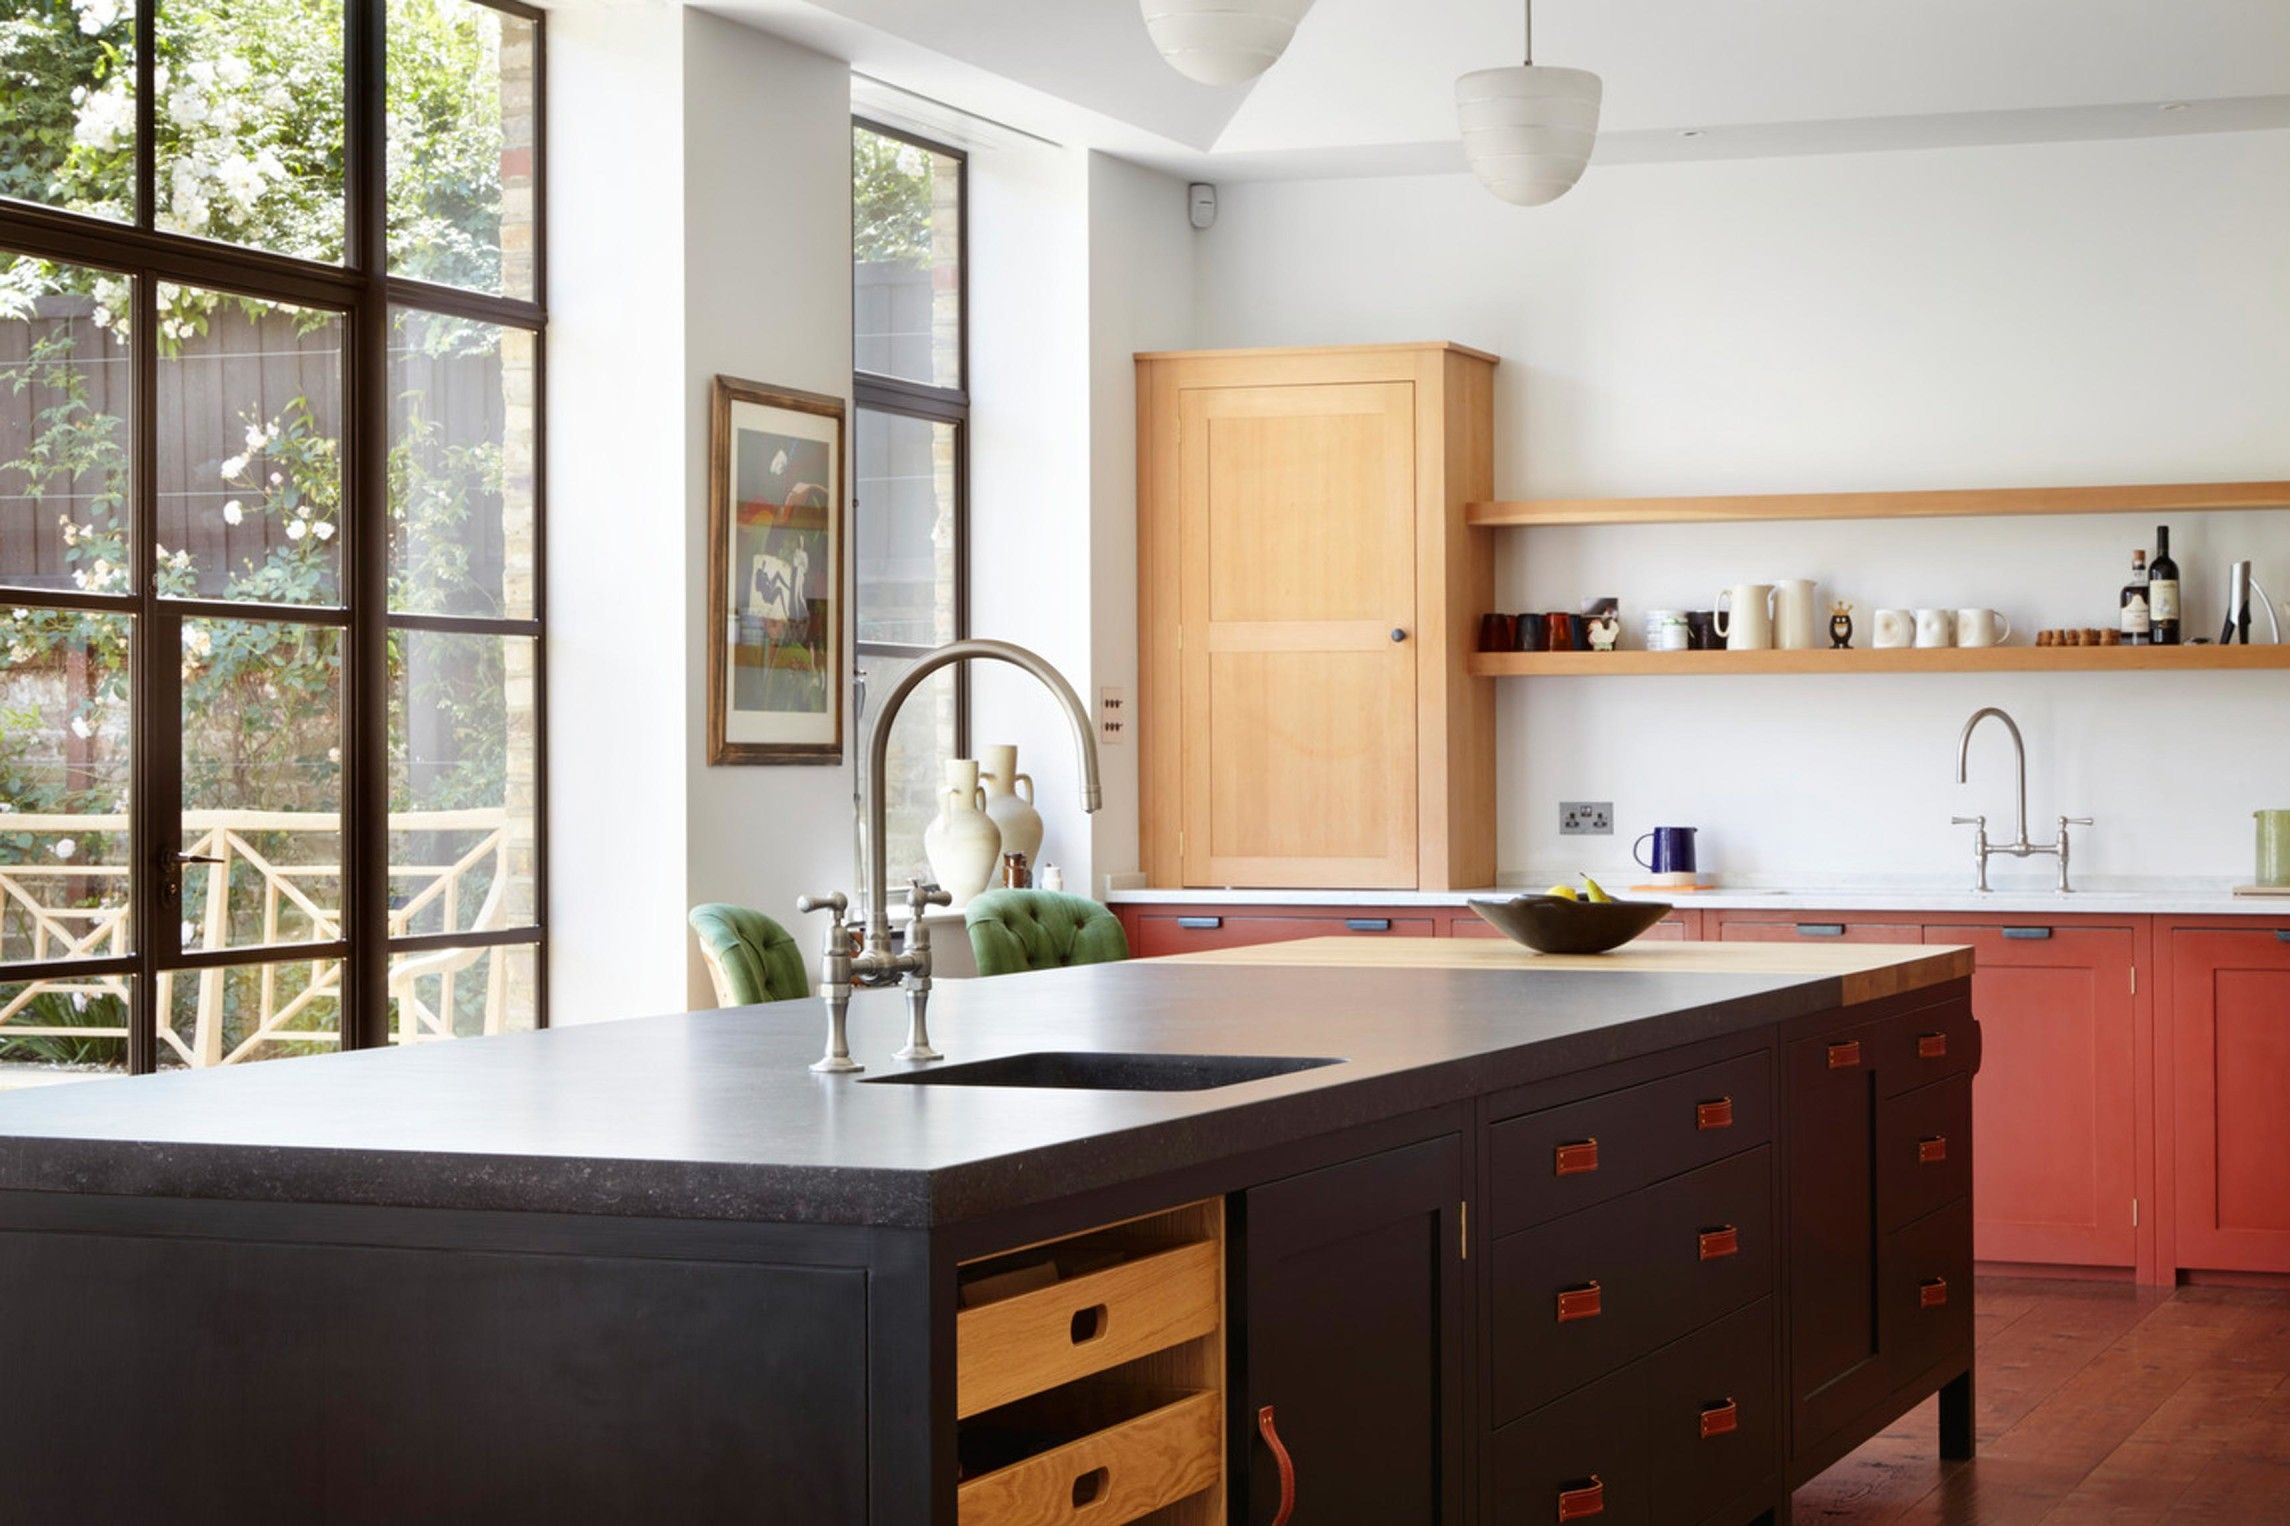 Move Over Two Color Tuxedo Kitchens A Big New Trend Is Here Kitchen Design Plain English Kitchen Kitchen Trends Grey Kitchen Designs